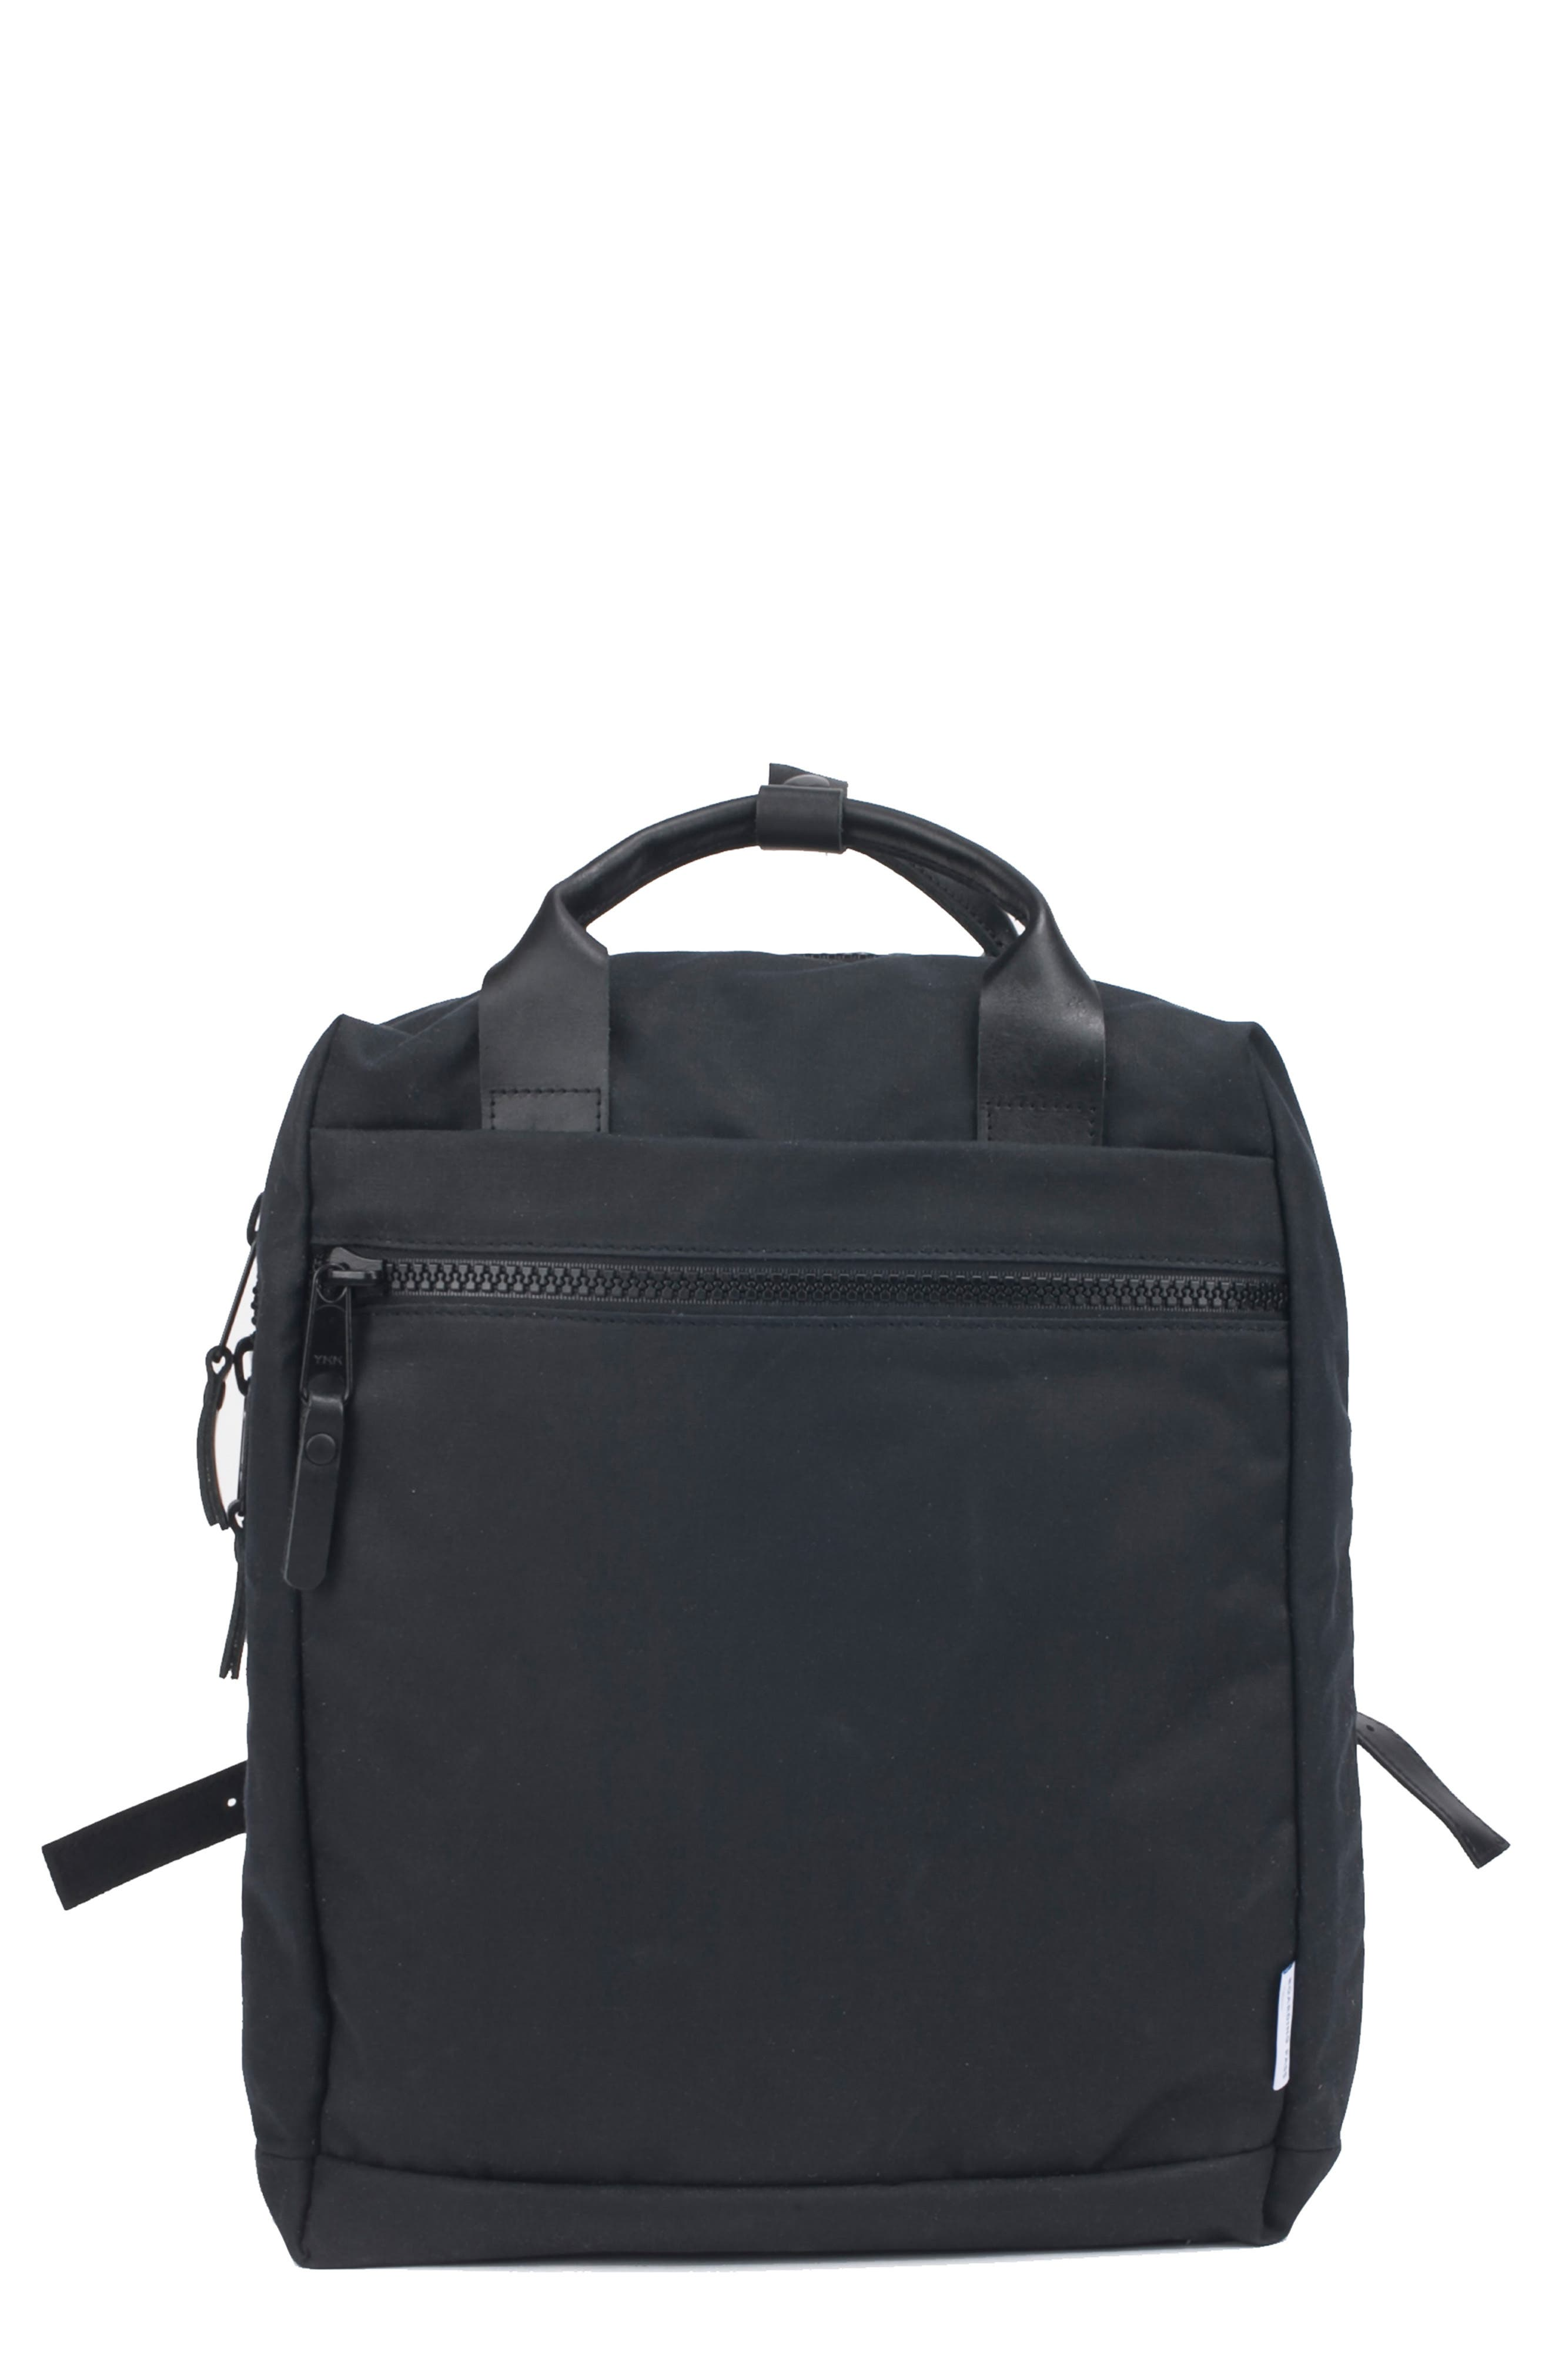 Metro Backpack,                         Main,                         color, BLACK